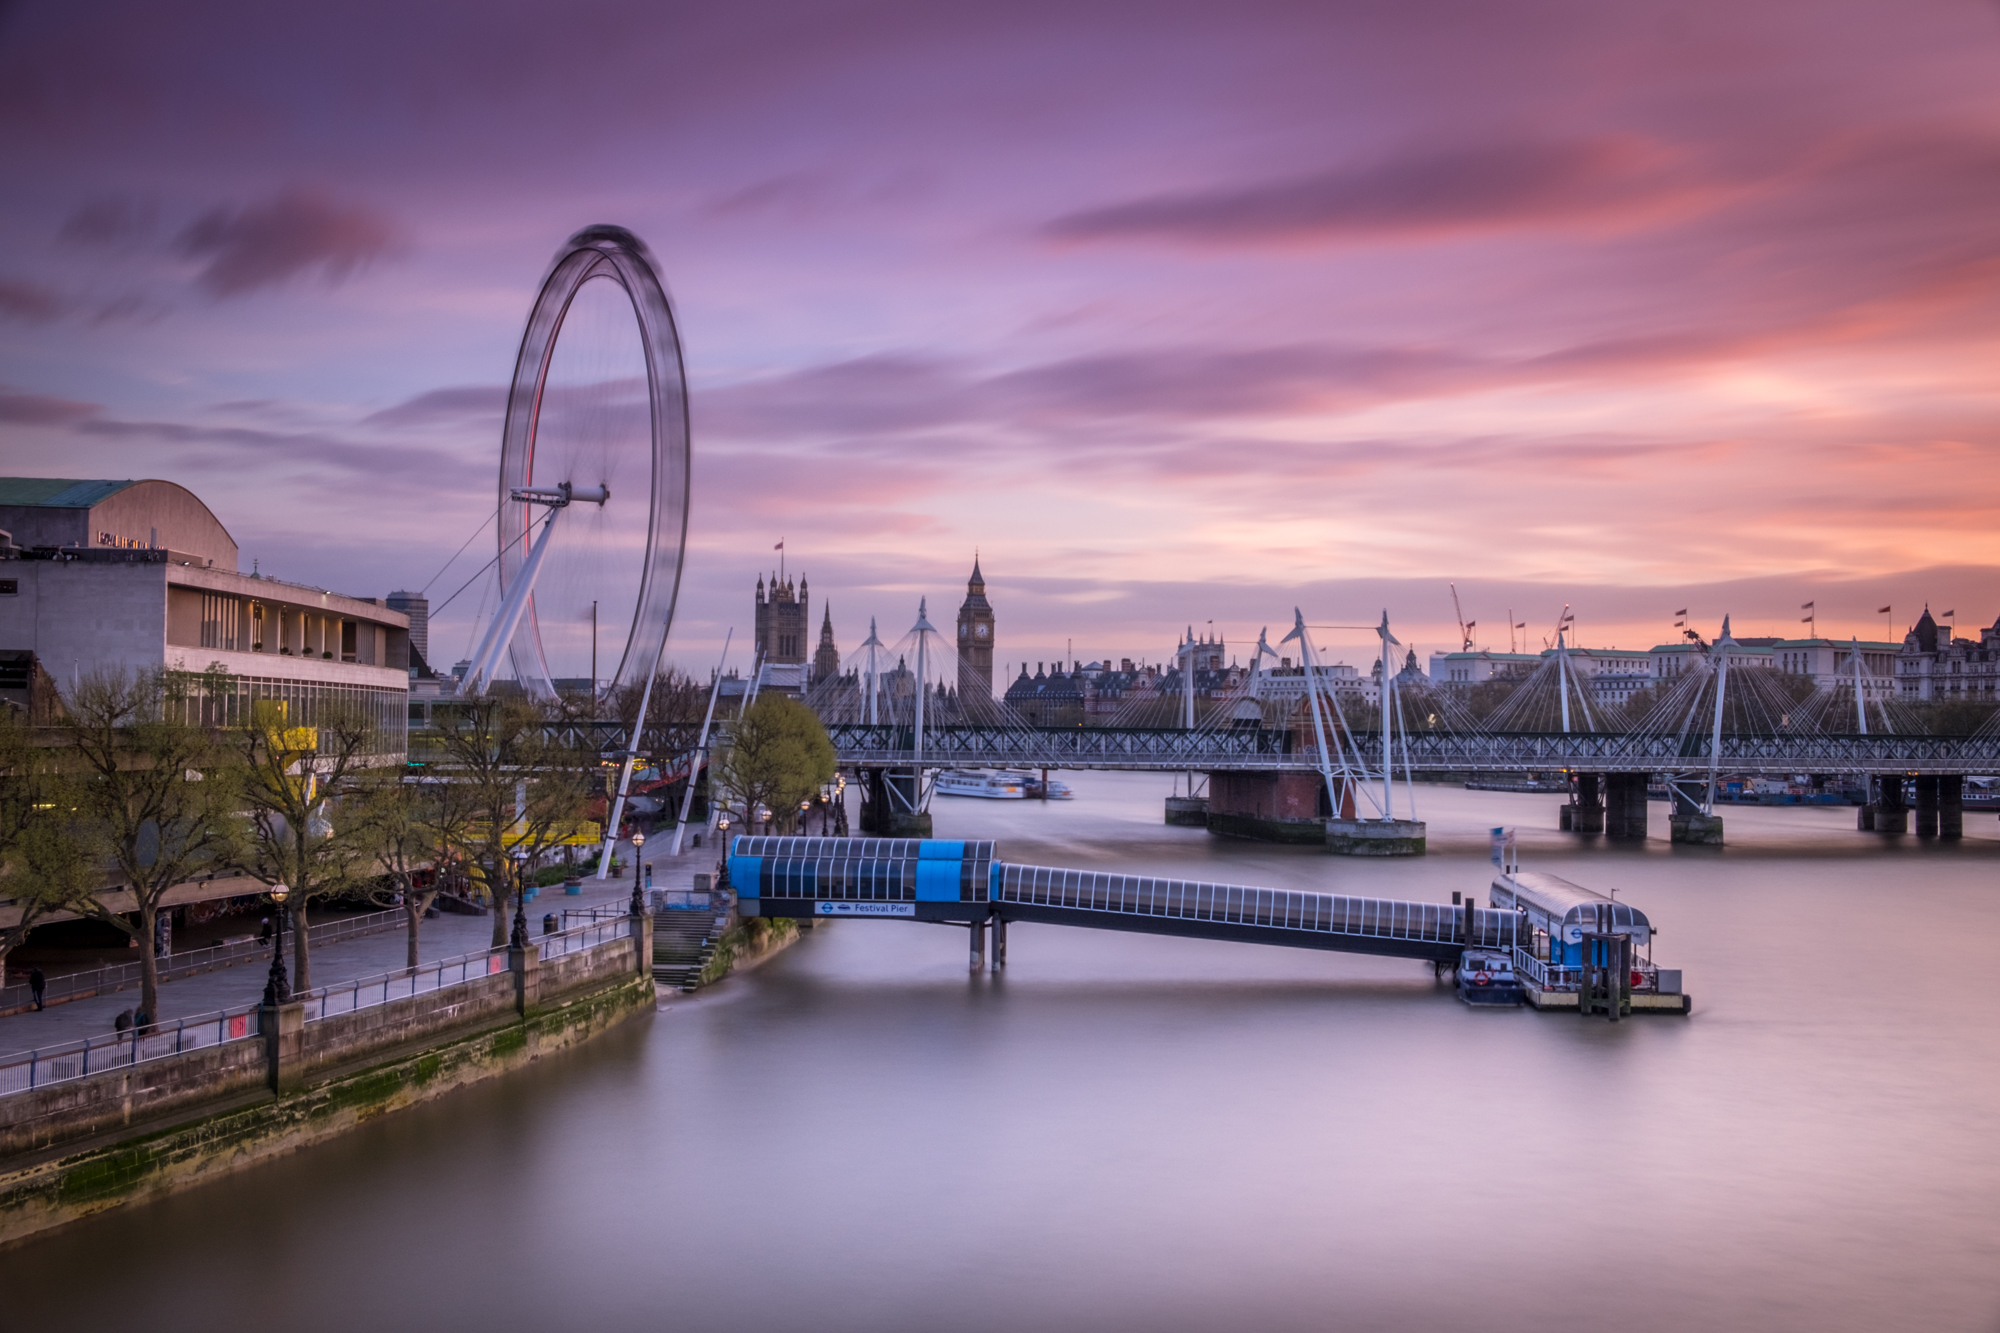 Sunset at the South Bank with Shadow hue added by Trevor Sherwin